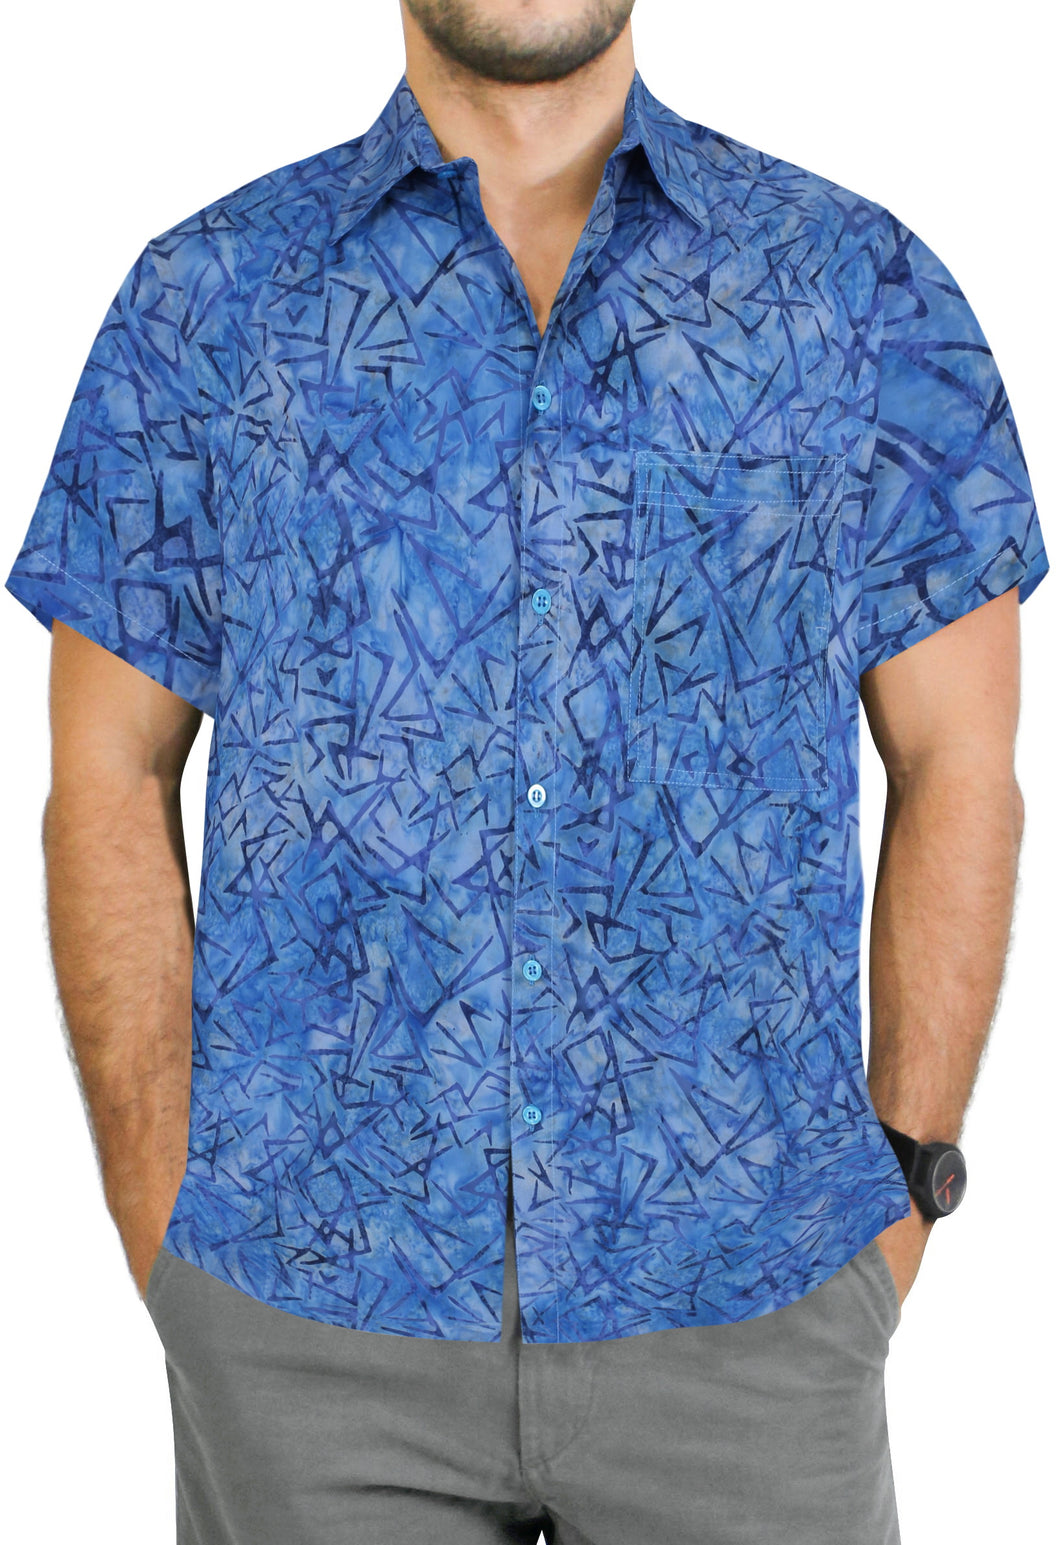 la-leela-men-casual-men-wear-summer-100-cotton-hand-printed-blue-aloha-size-s-xxl